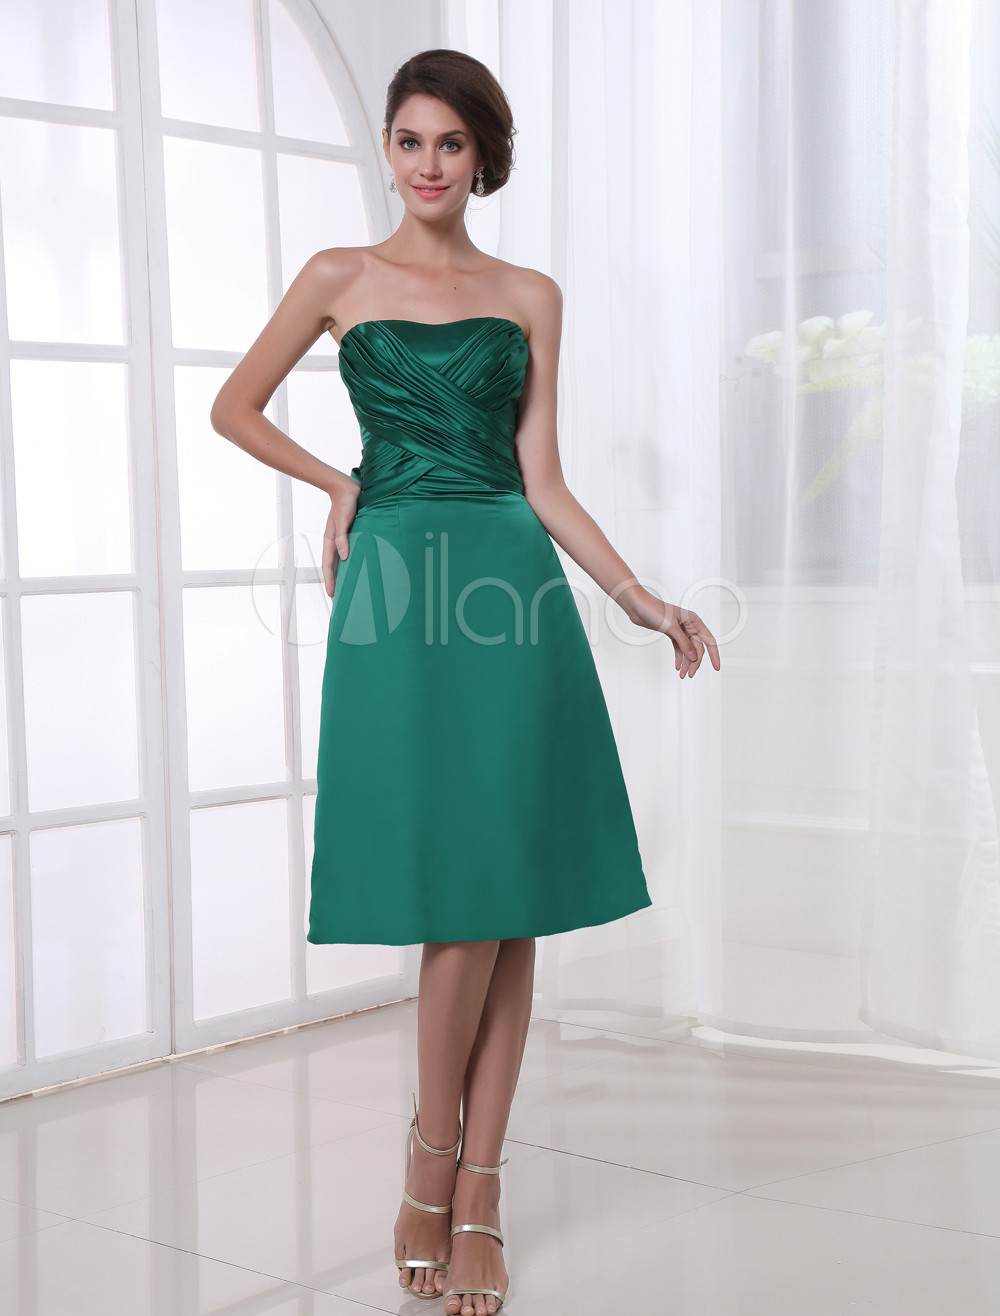 Hunter Green Strapless Knee-Length Bridesmaid Dress with Charming Bow